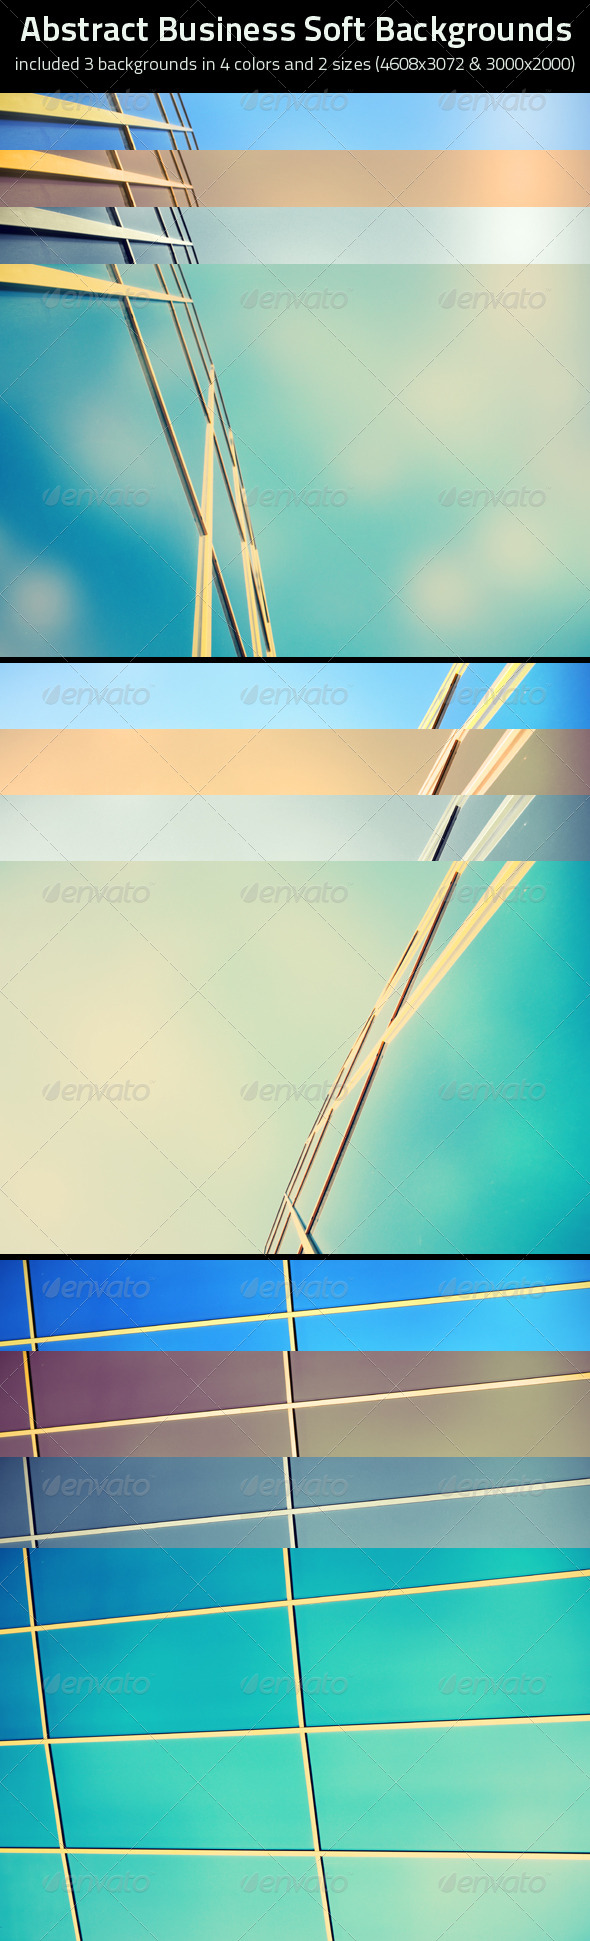 Abstract Business Soft Backgrounds - Business Backgrounds